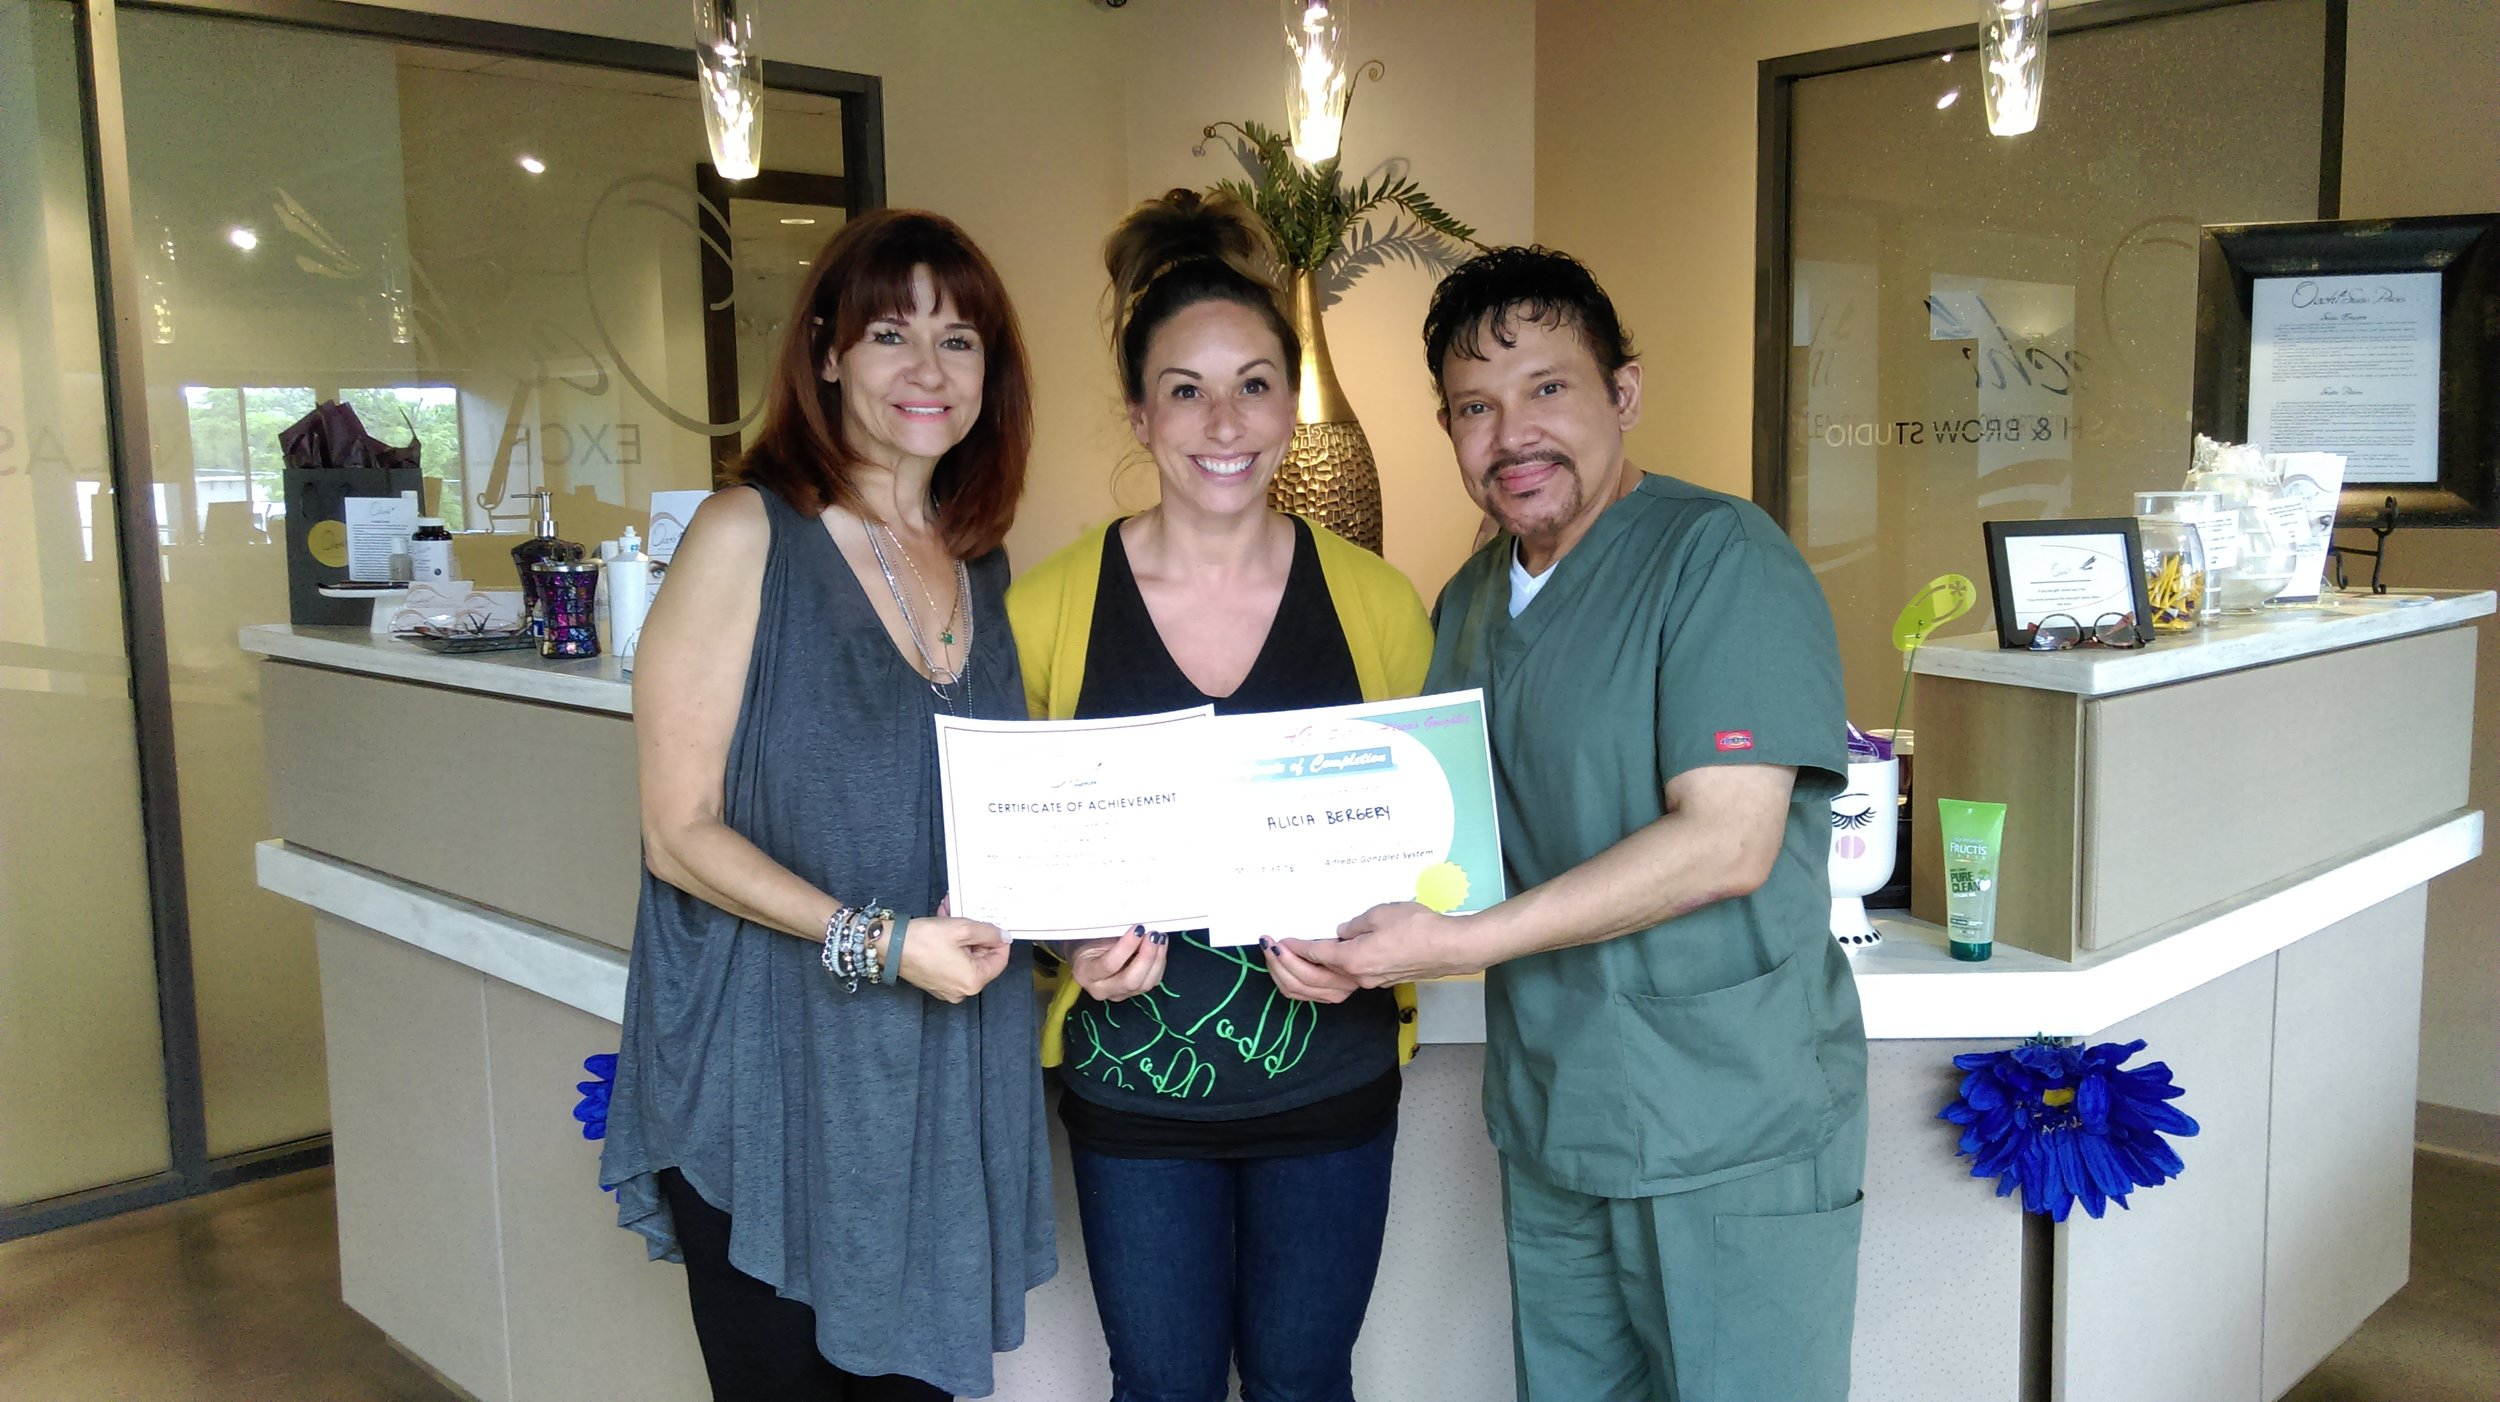 Alicia Bergery (IN.): Microblading Class - June 2016